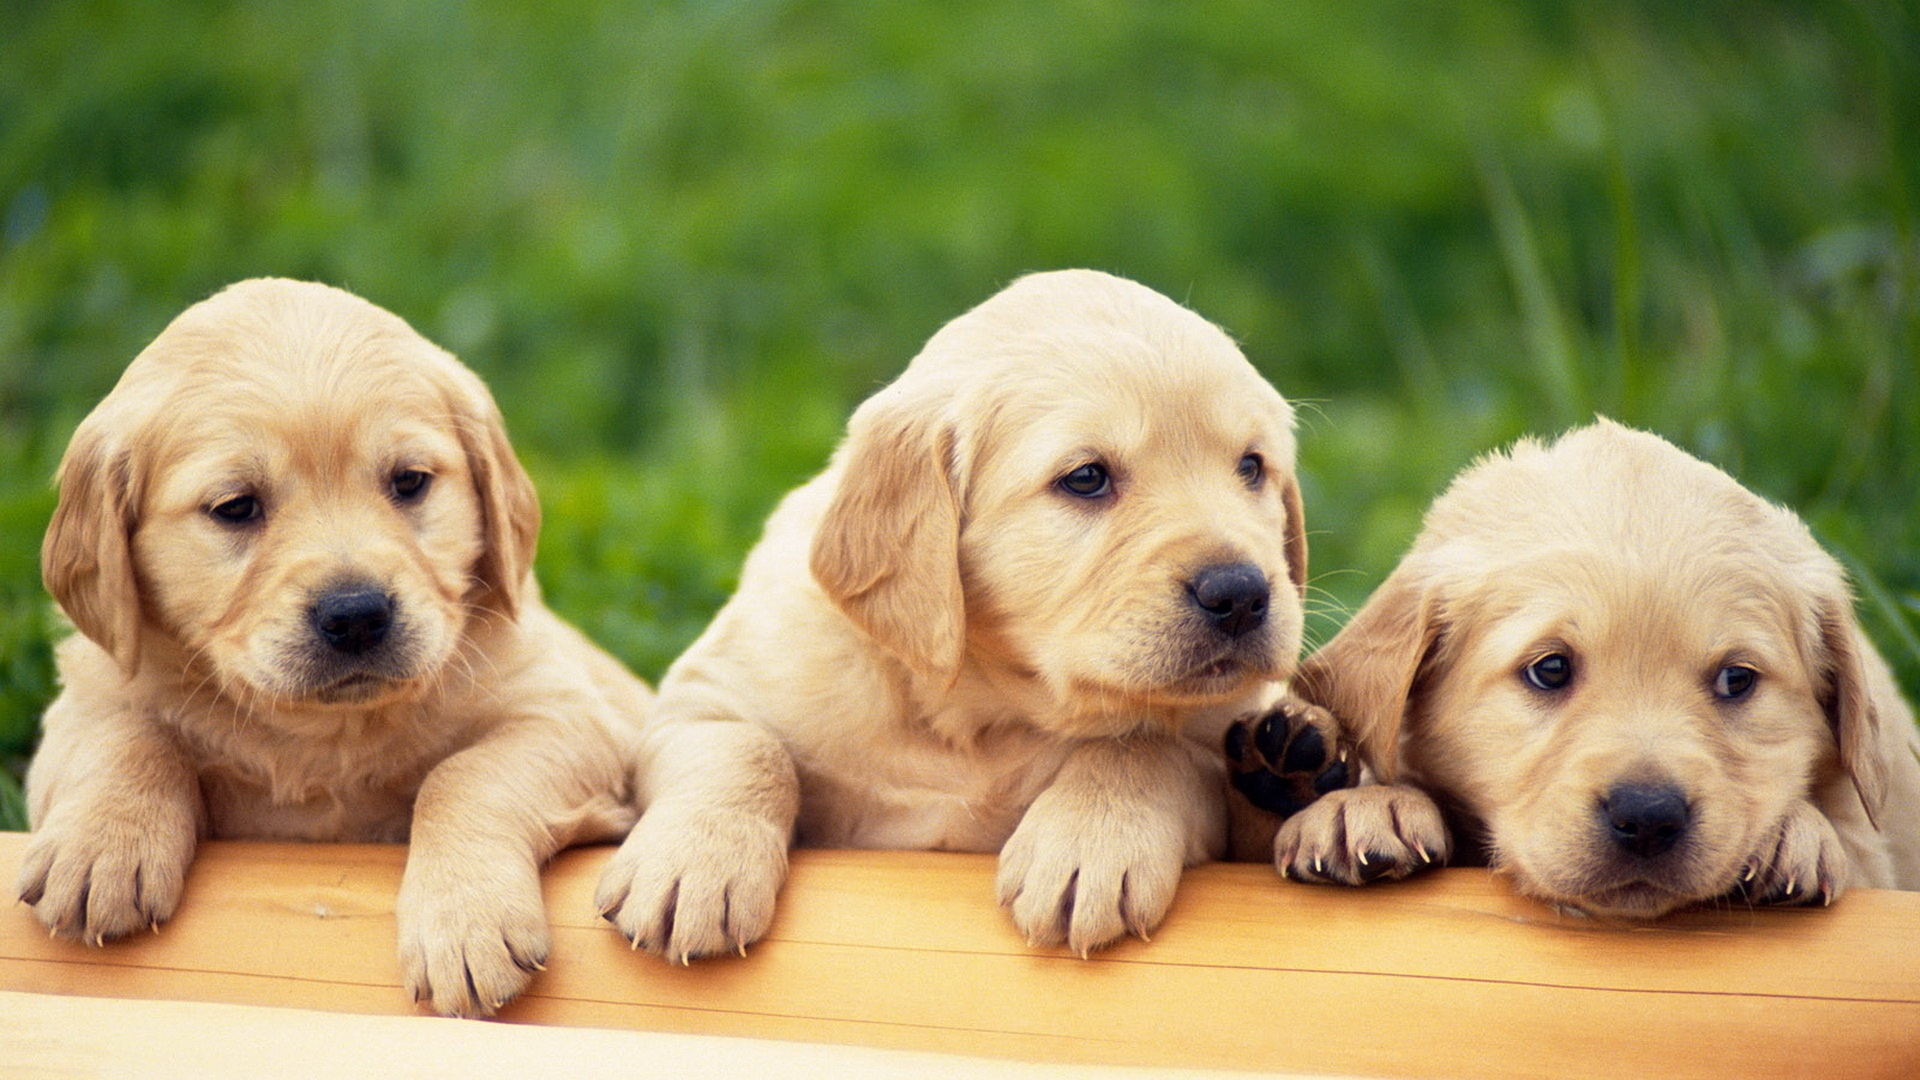 wallpaper.wiki-Cute-Puppy-HQ-Background-PIC-WPD003564